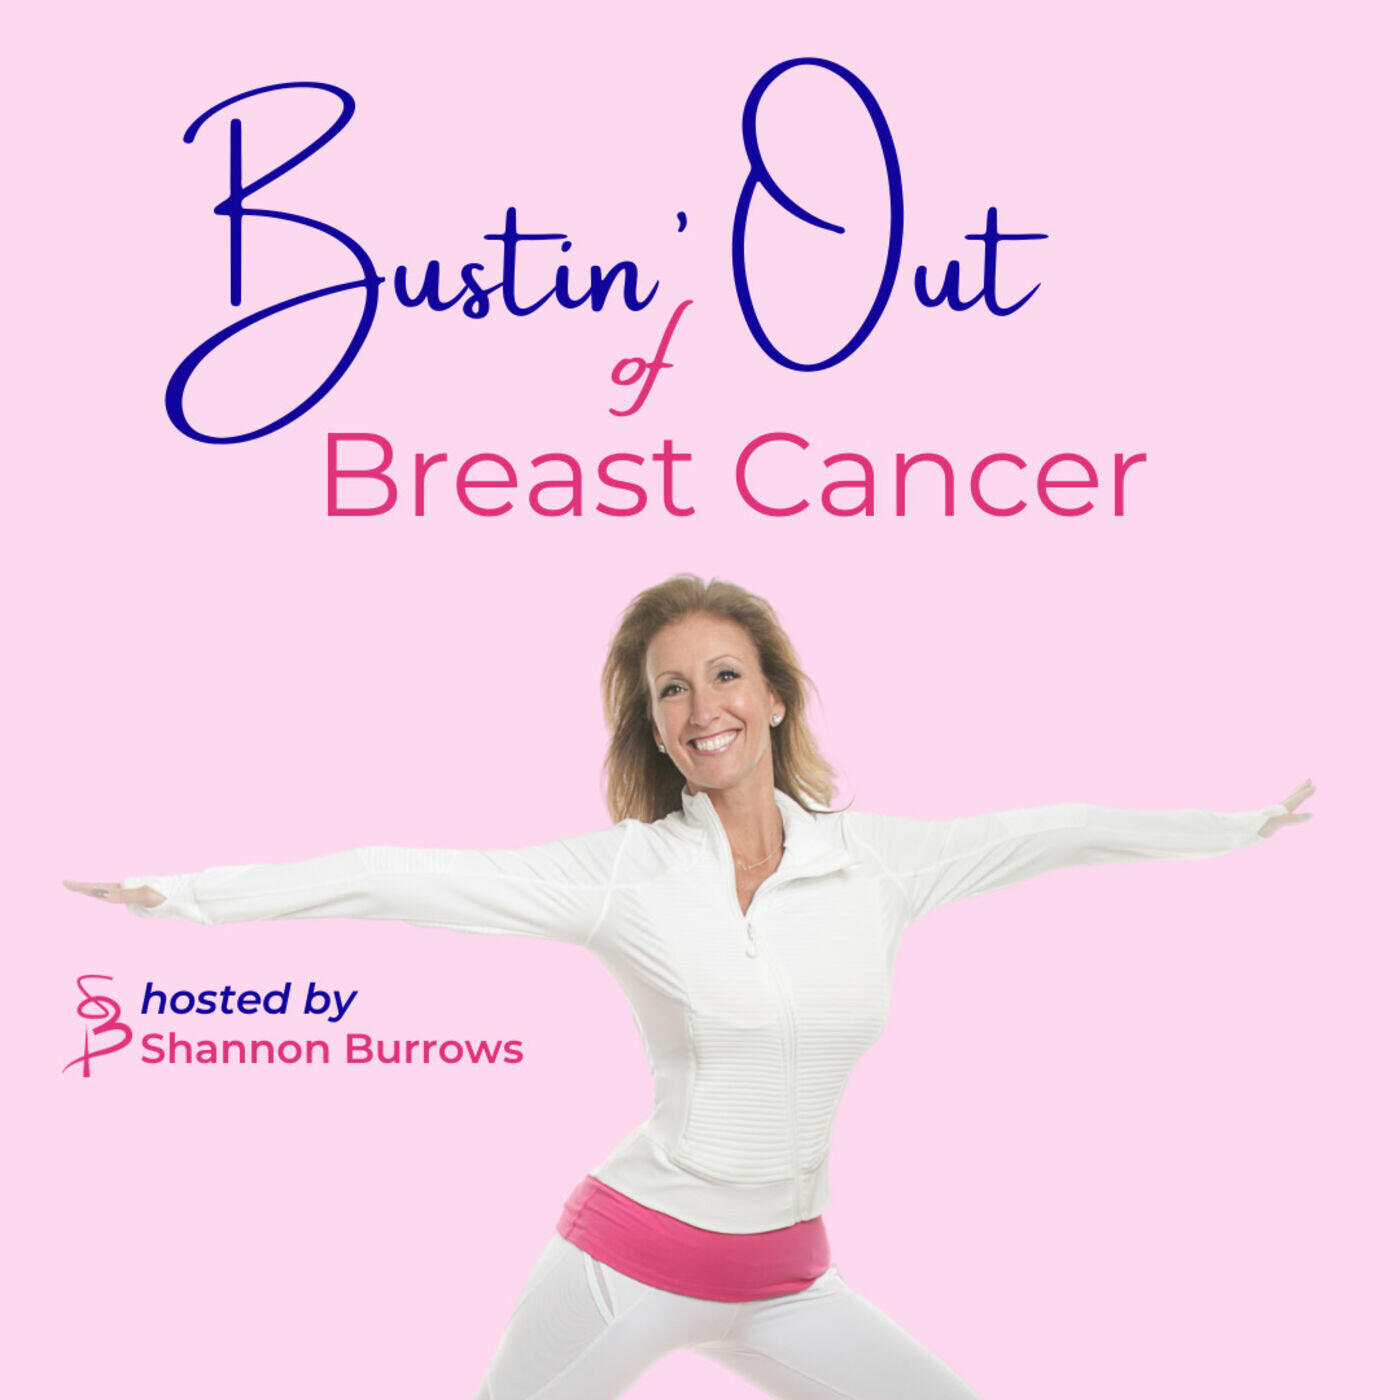 Bustin' Out of Breast Cancer